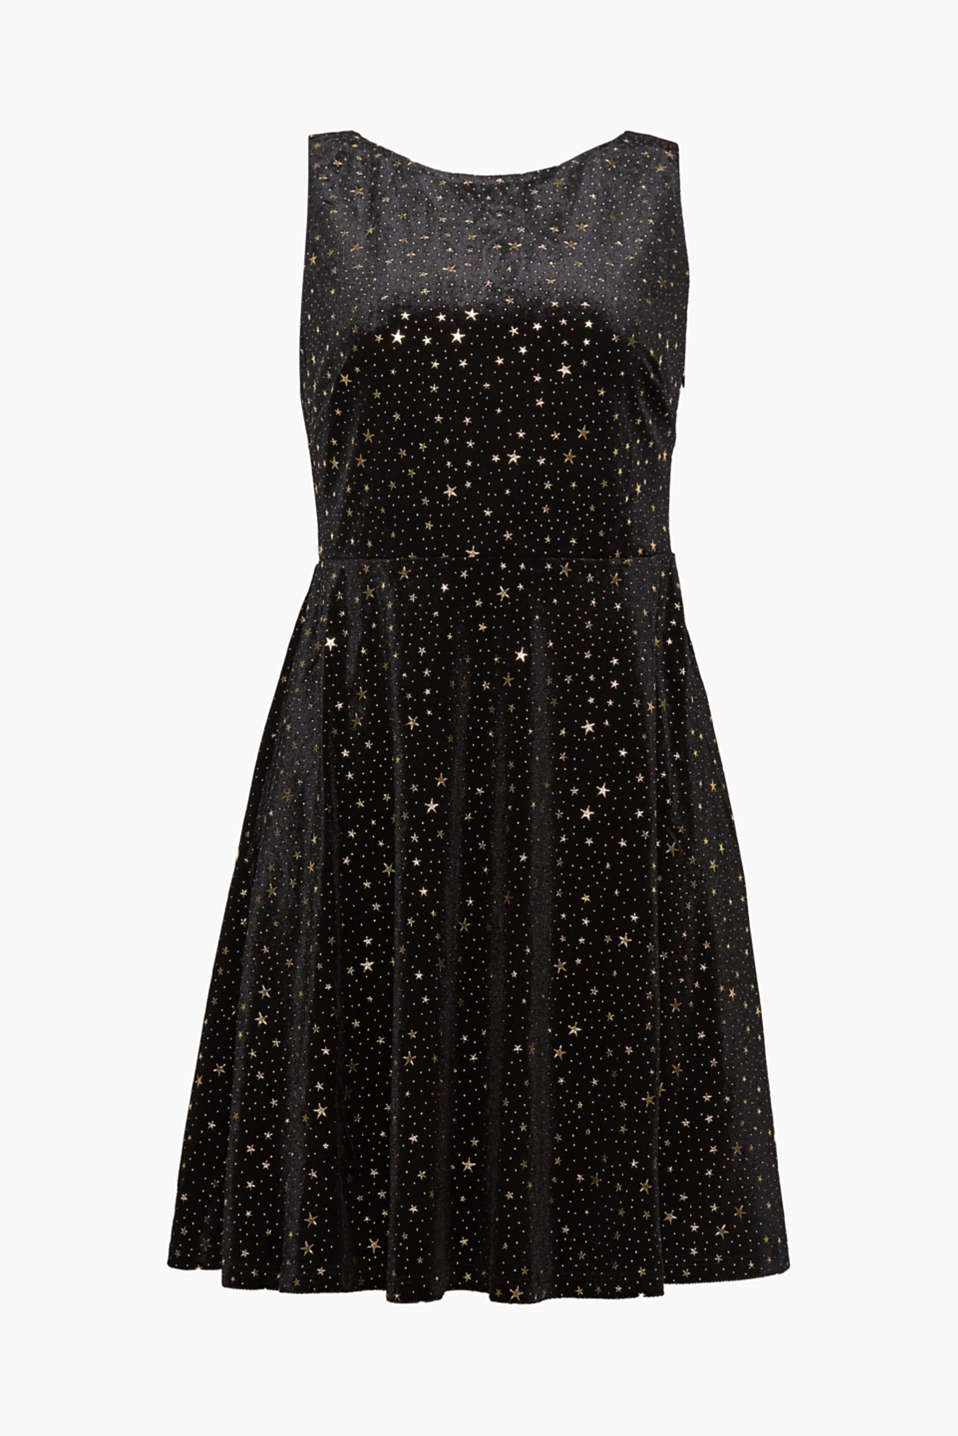 We love velvet – as well as this dress with a star print, added stretch for comfort and an exciting back neckline!